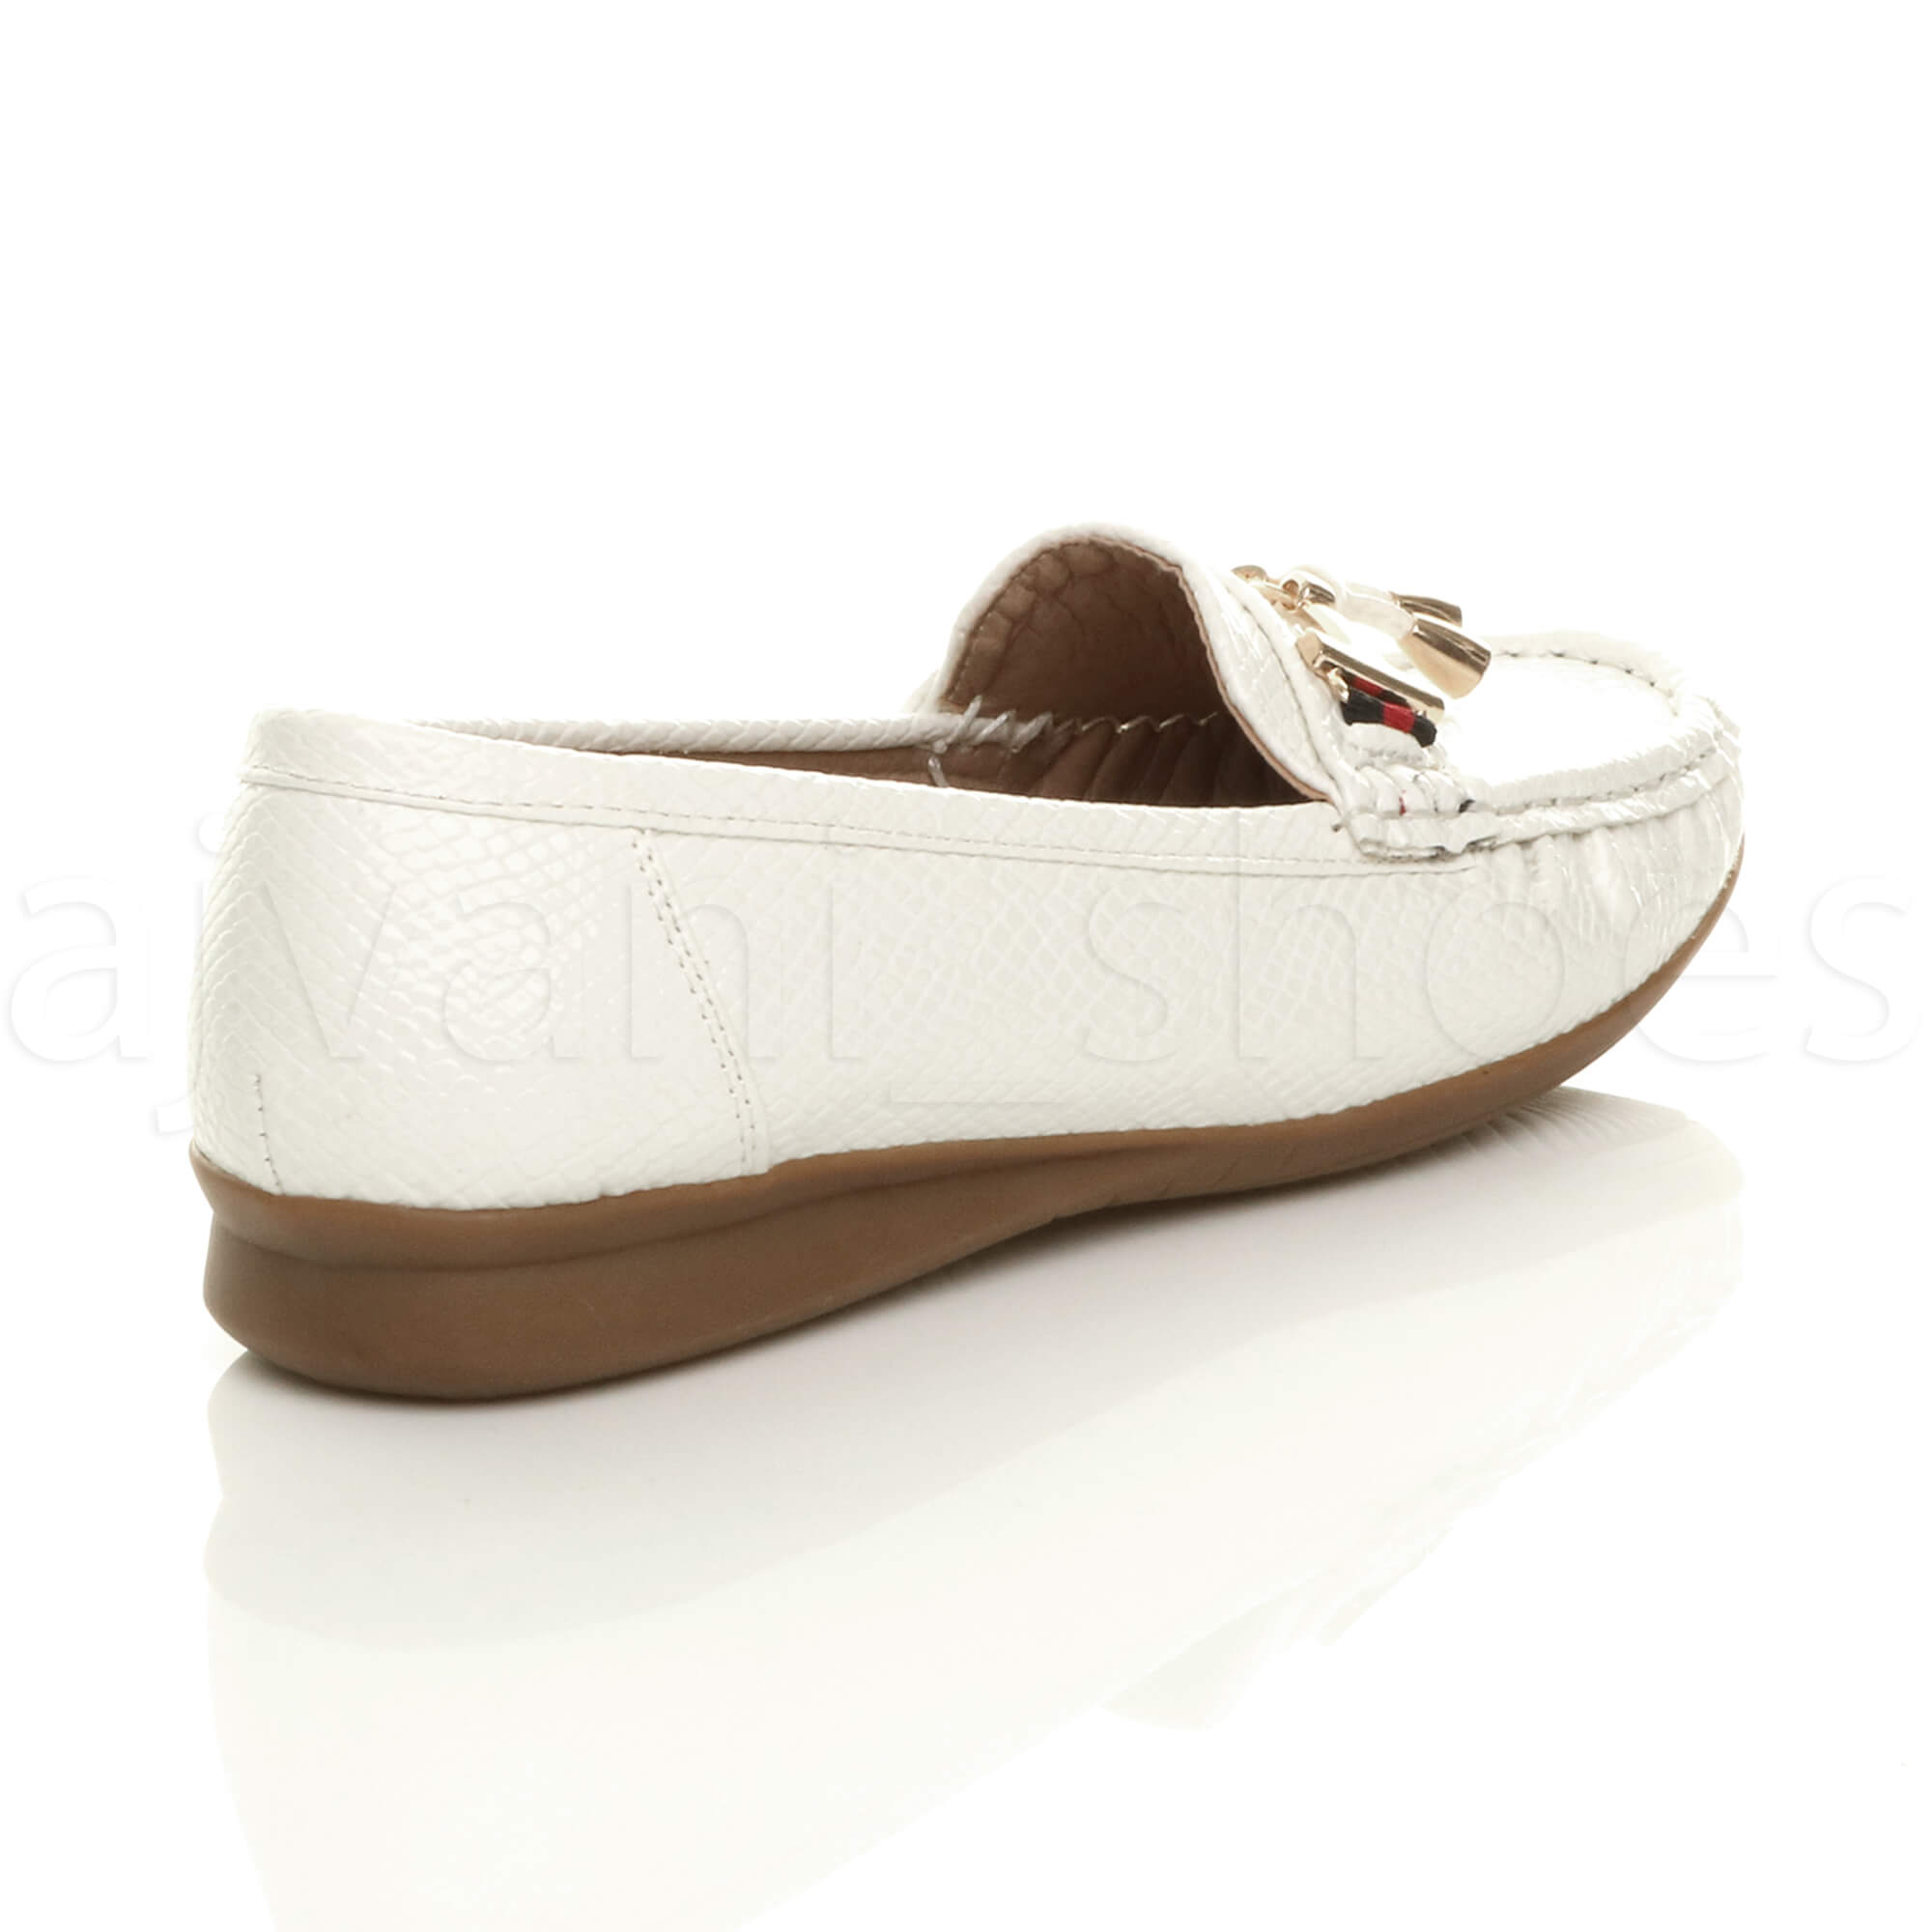 WOMENS-LADIES-LOW-HEEL-WEDGE-LEATHER-TASSEL-LOAFERS-COMFORT-MOCCASINS-SHOES-SIZE thumbnail 53